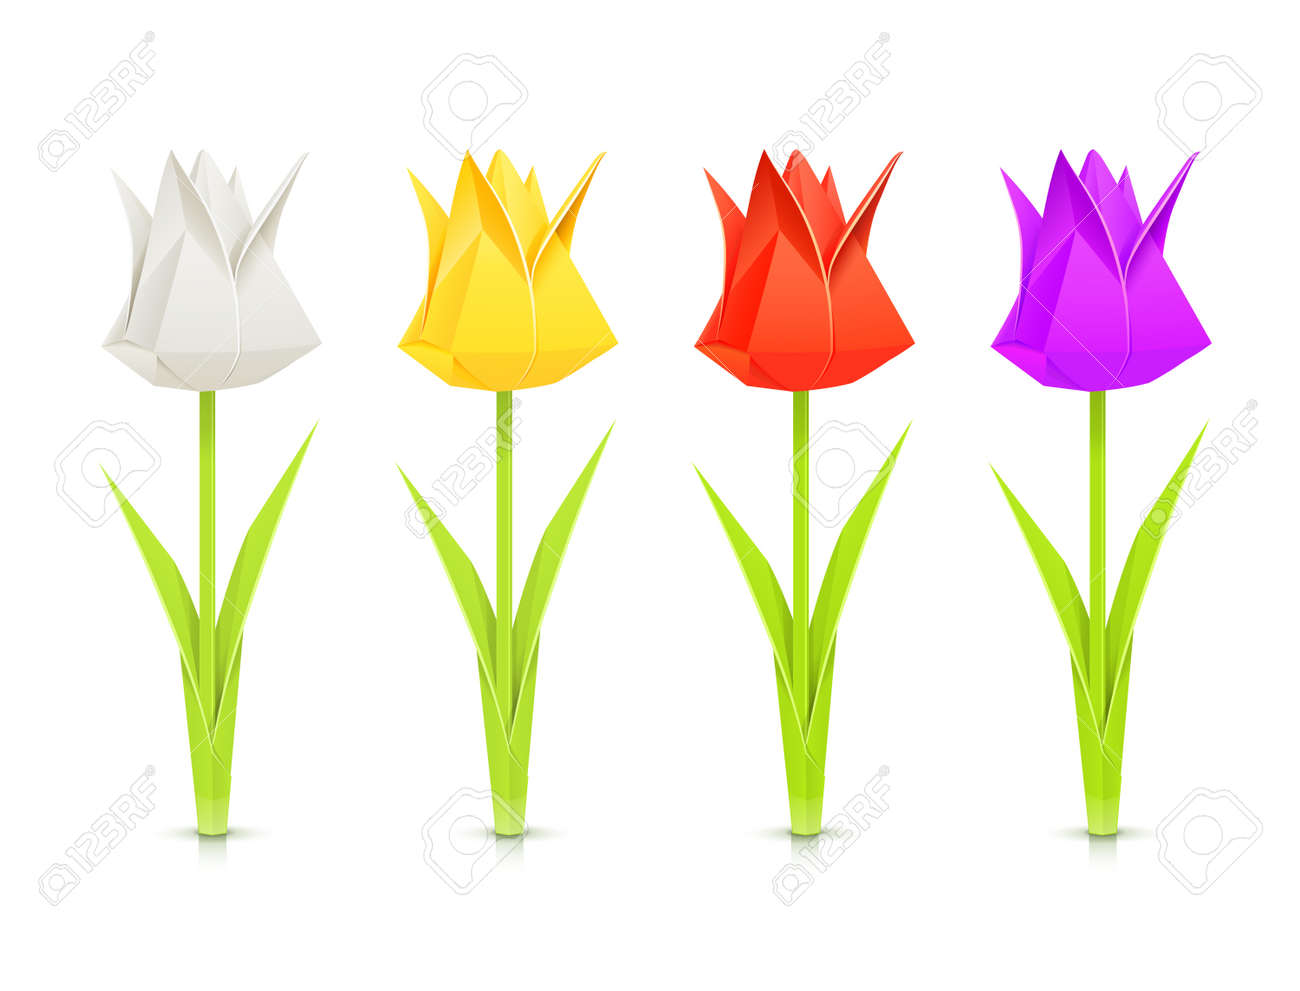 Set Of Tulips Paper Origami Flowers Vector Illustration Isolated On White Background EPS10 Transparent Objects